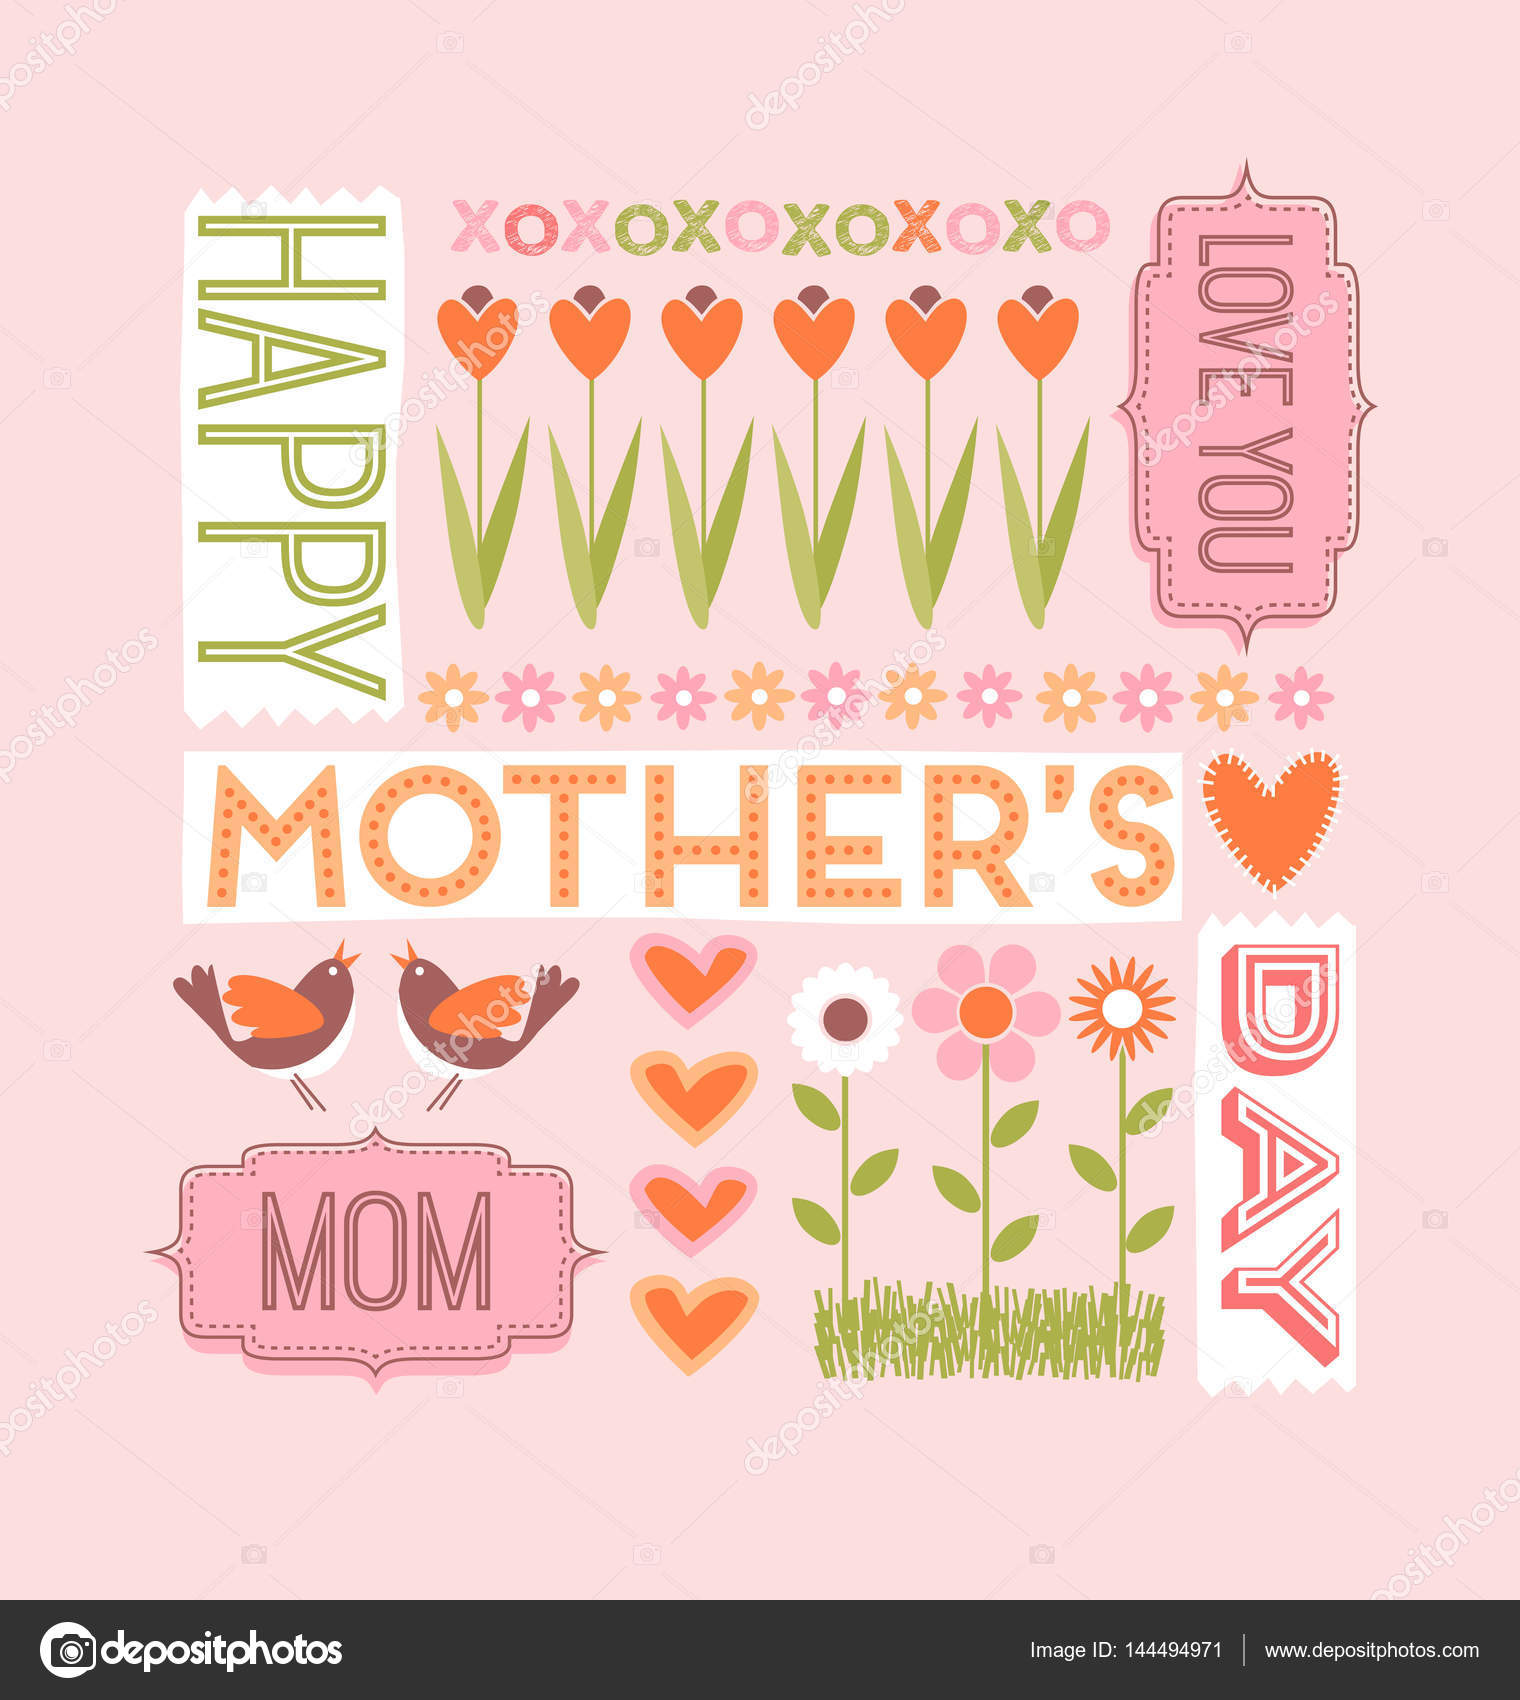 Mothers day greeting card collage of words flowers hearts and mothers day greeting card collage of words flowers hearts and birds vector by teddyandmia kristyandbryce Choice Image